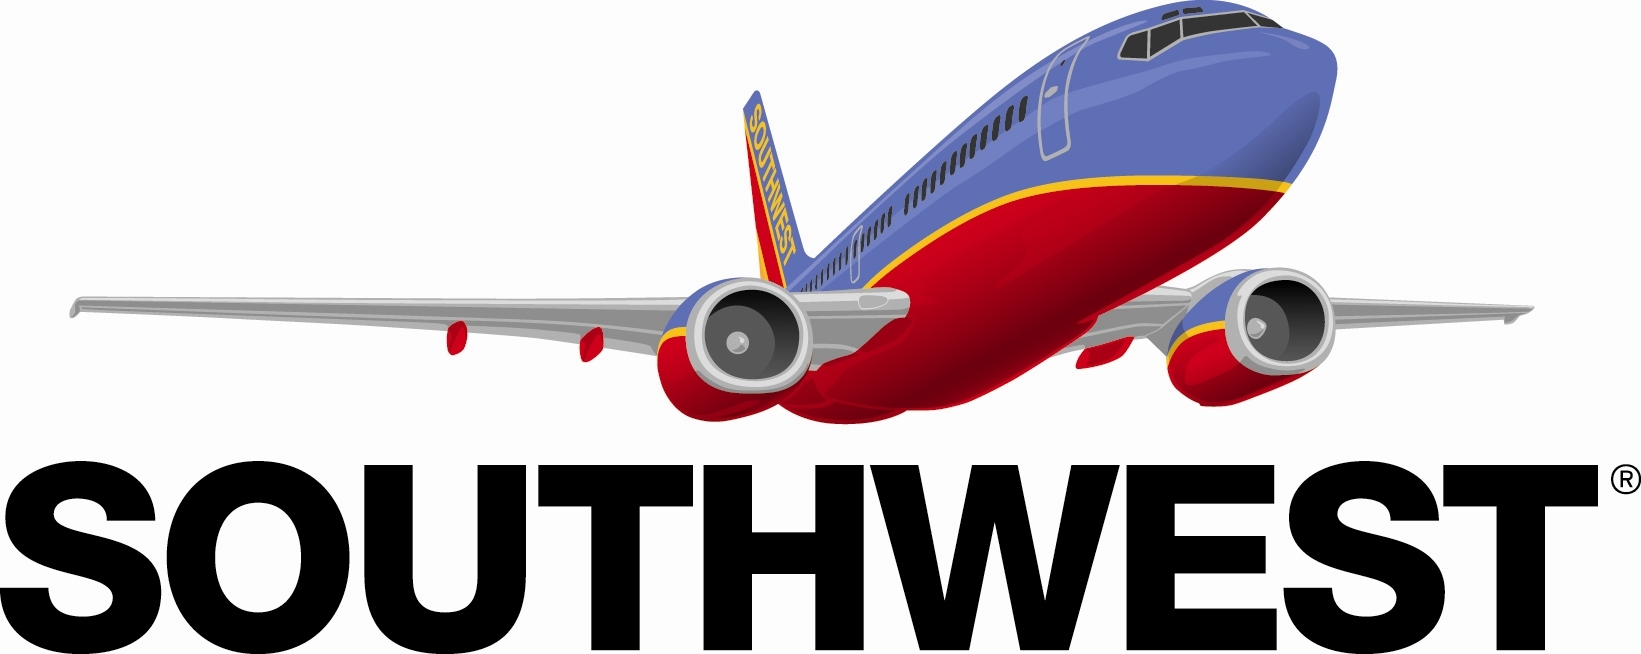 current price strategy of southwest airlines